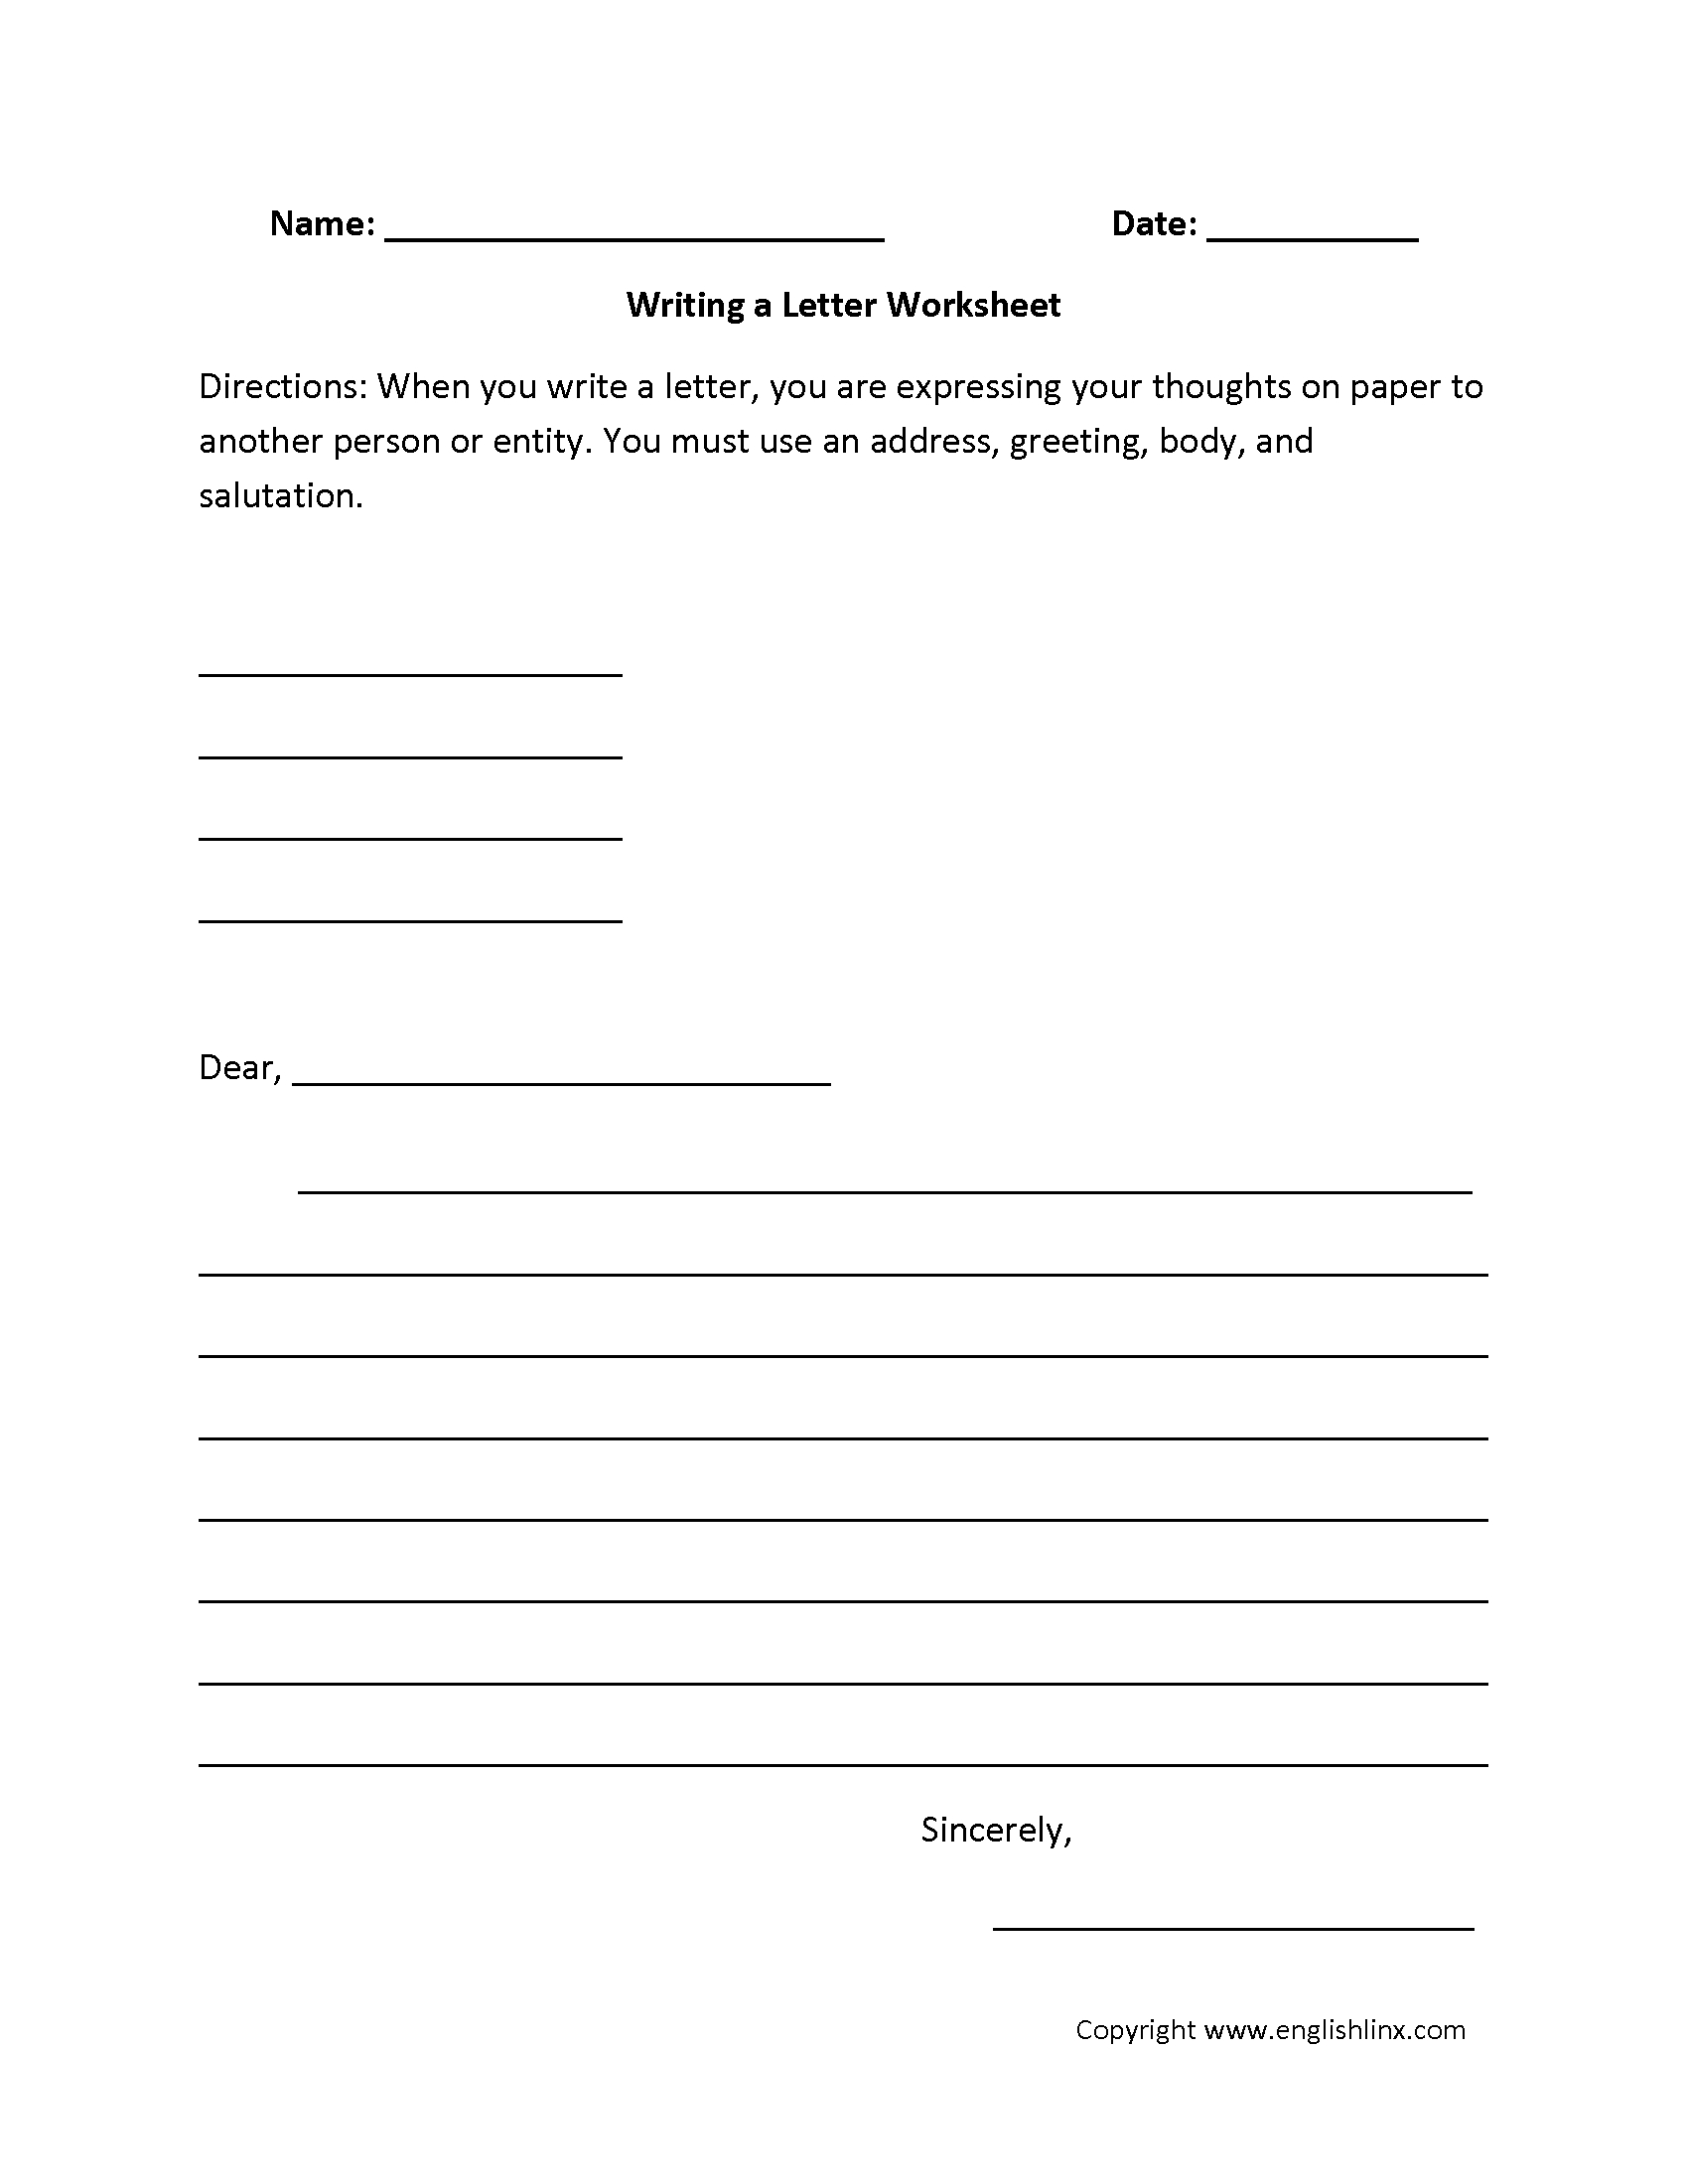 Englishlinx | Writing Worksheets | Free Printable Second Grade Writing Worksheets